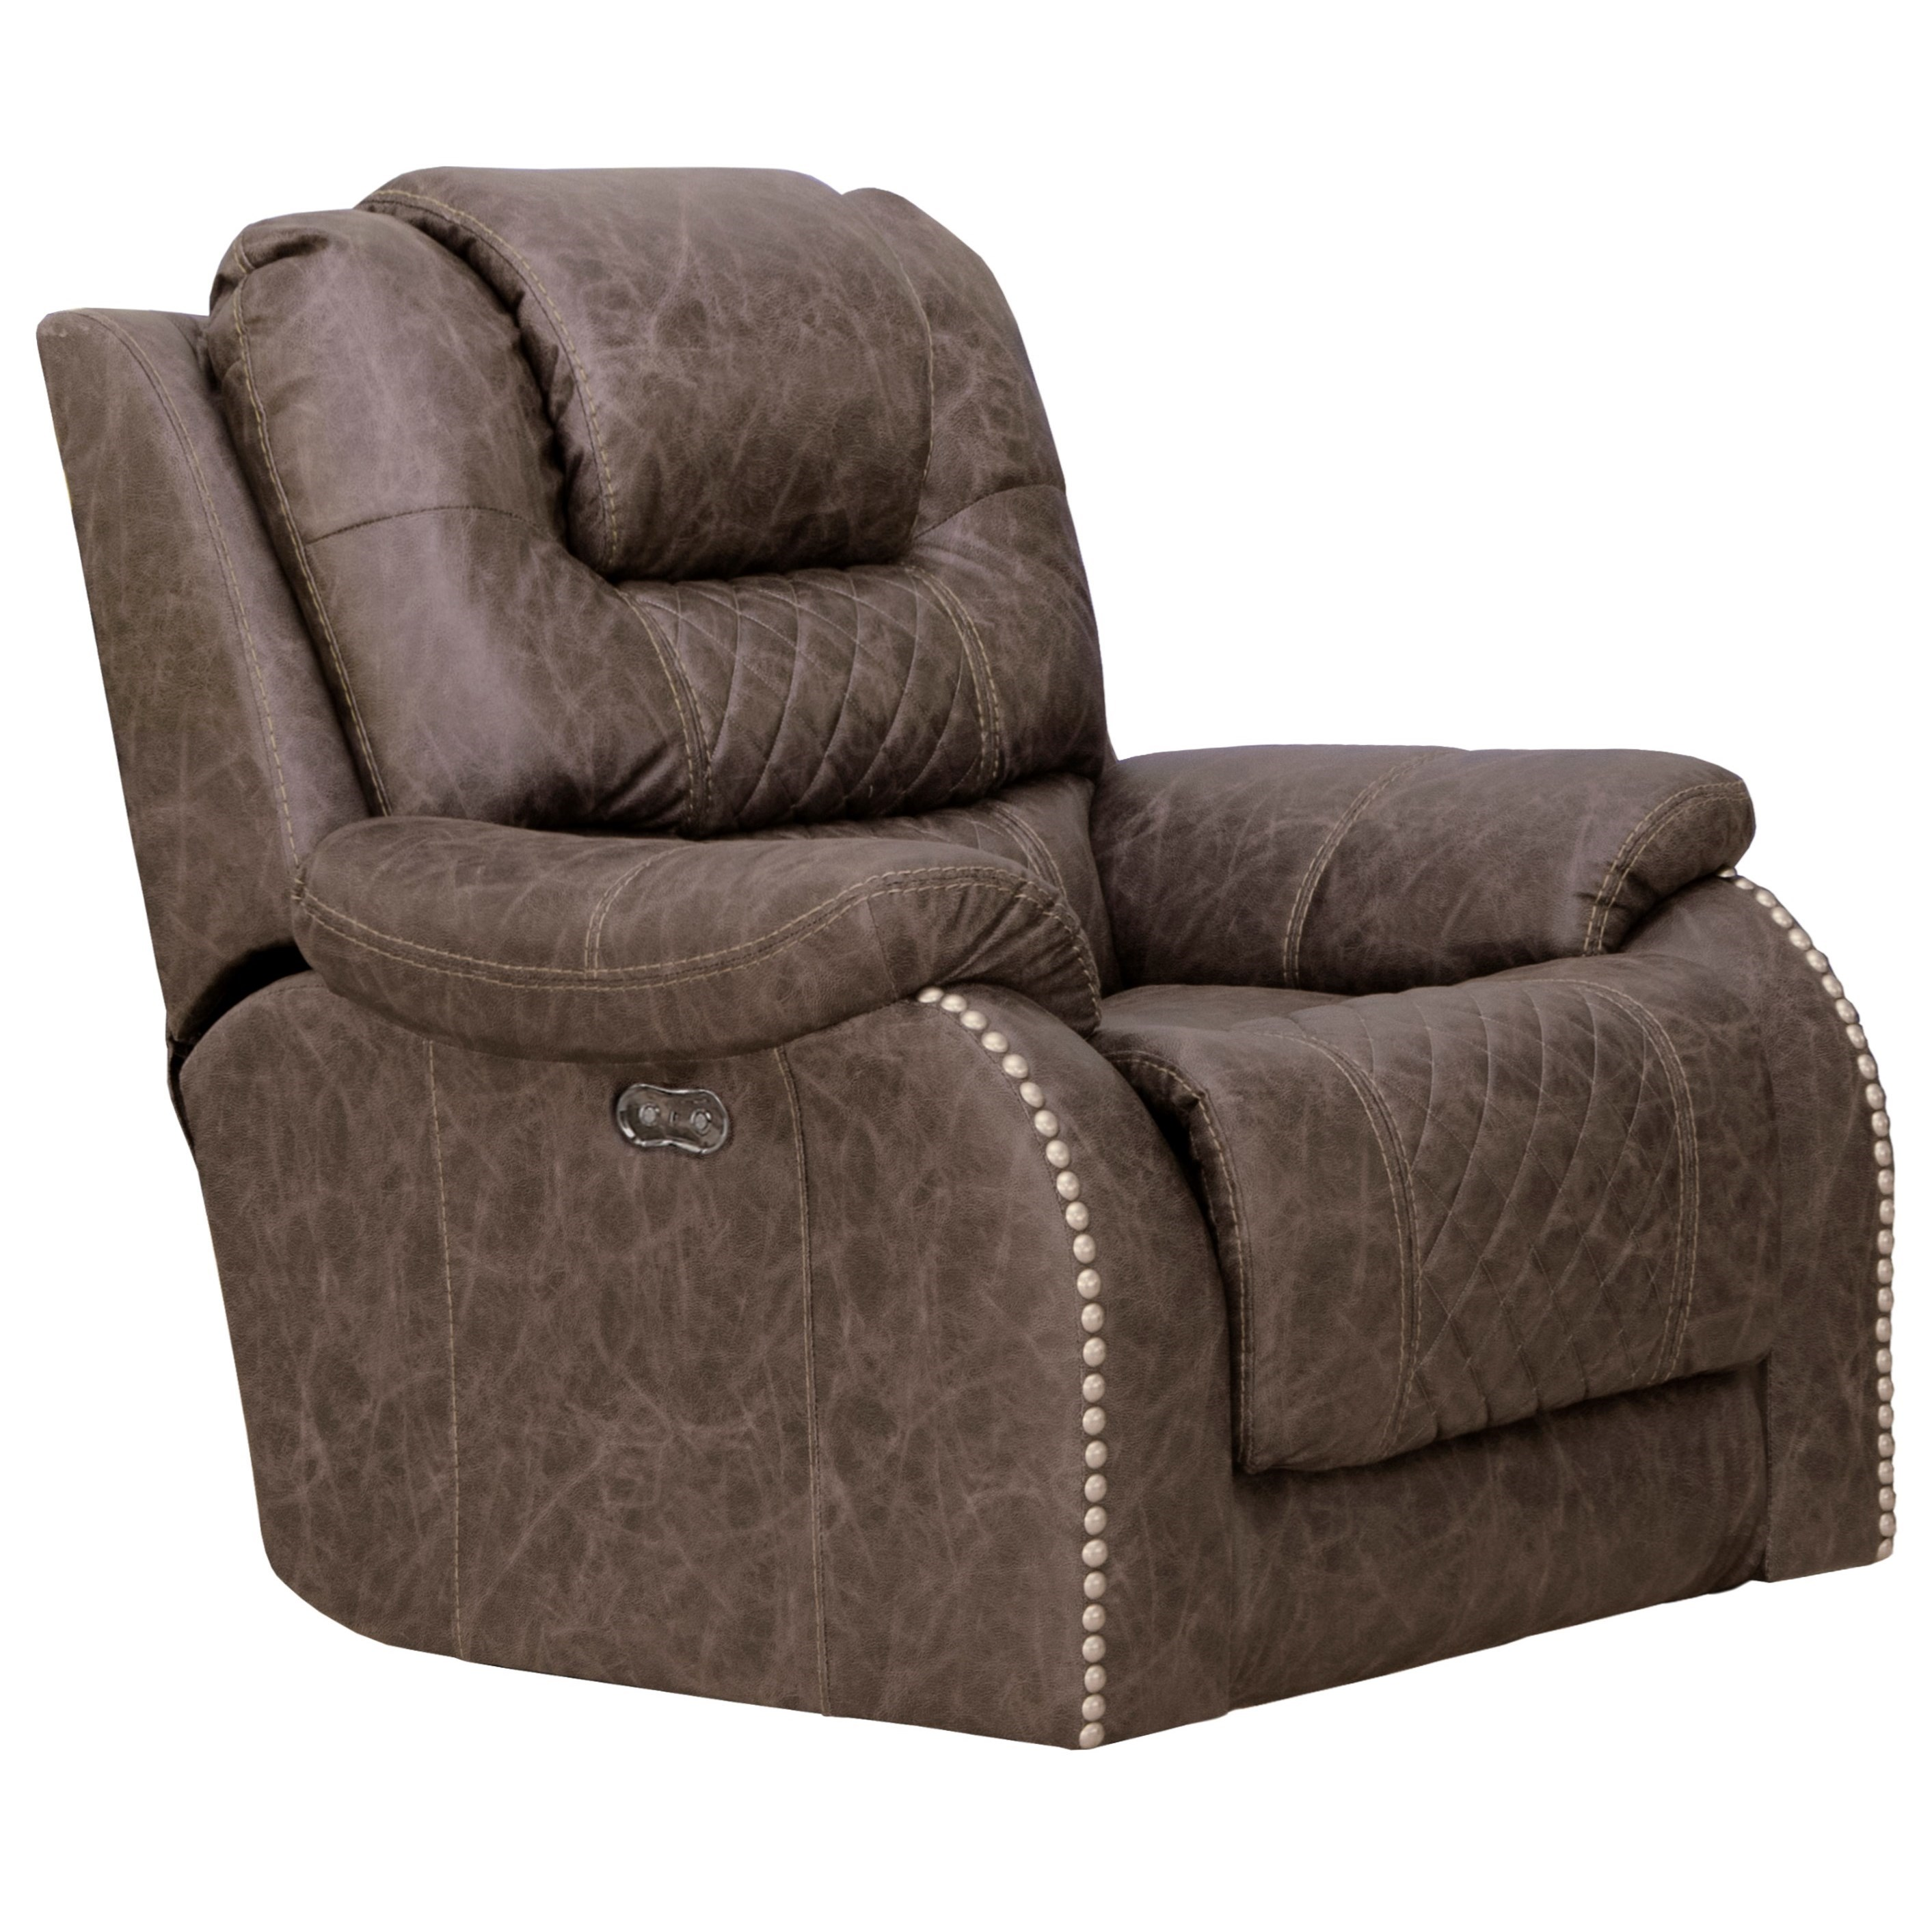 Carter Power Lay Flat Recliner by Catnapper at Northeast Factory Direct